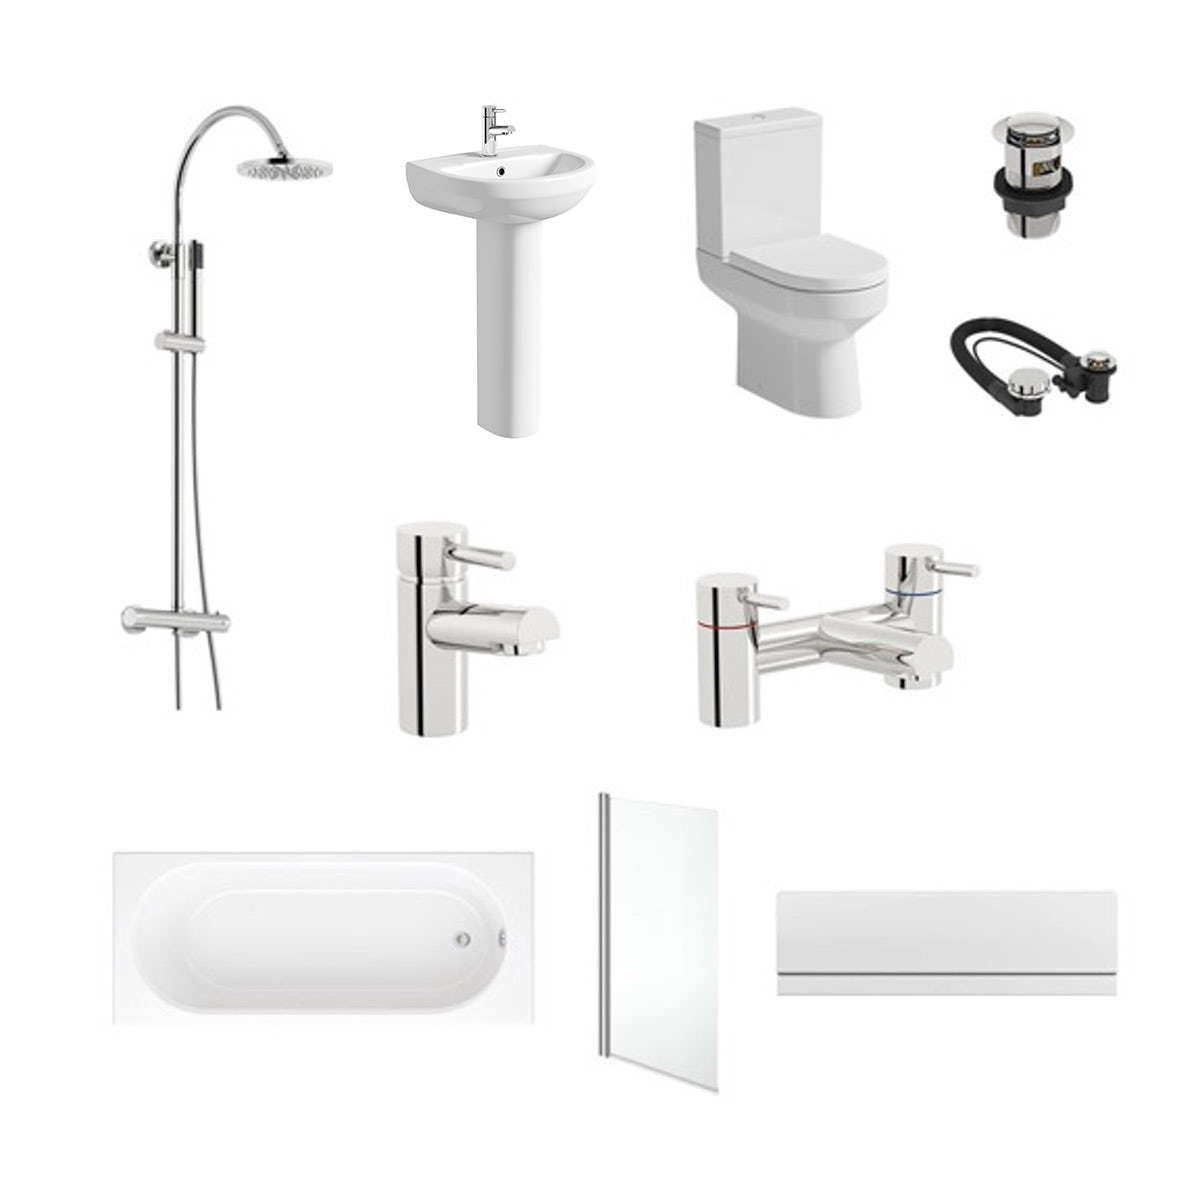 Orchard Wharfe complete bathroom suite with straight bath, shower and taps